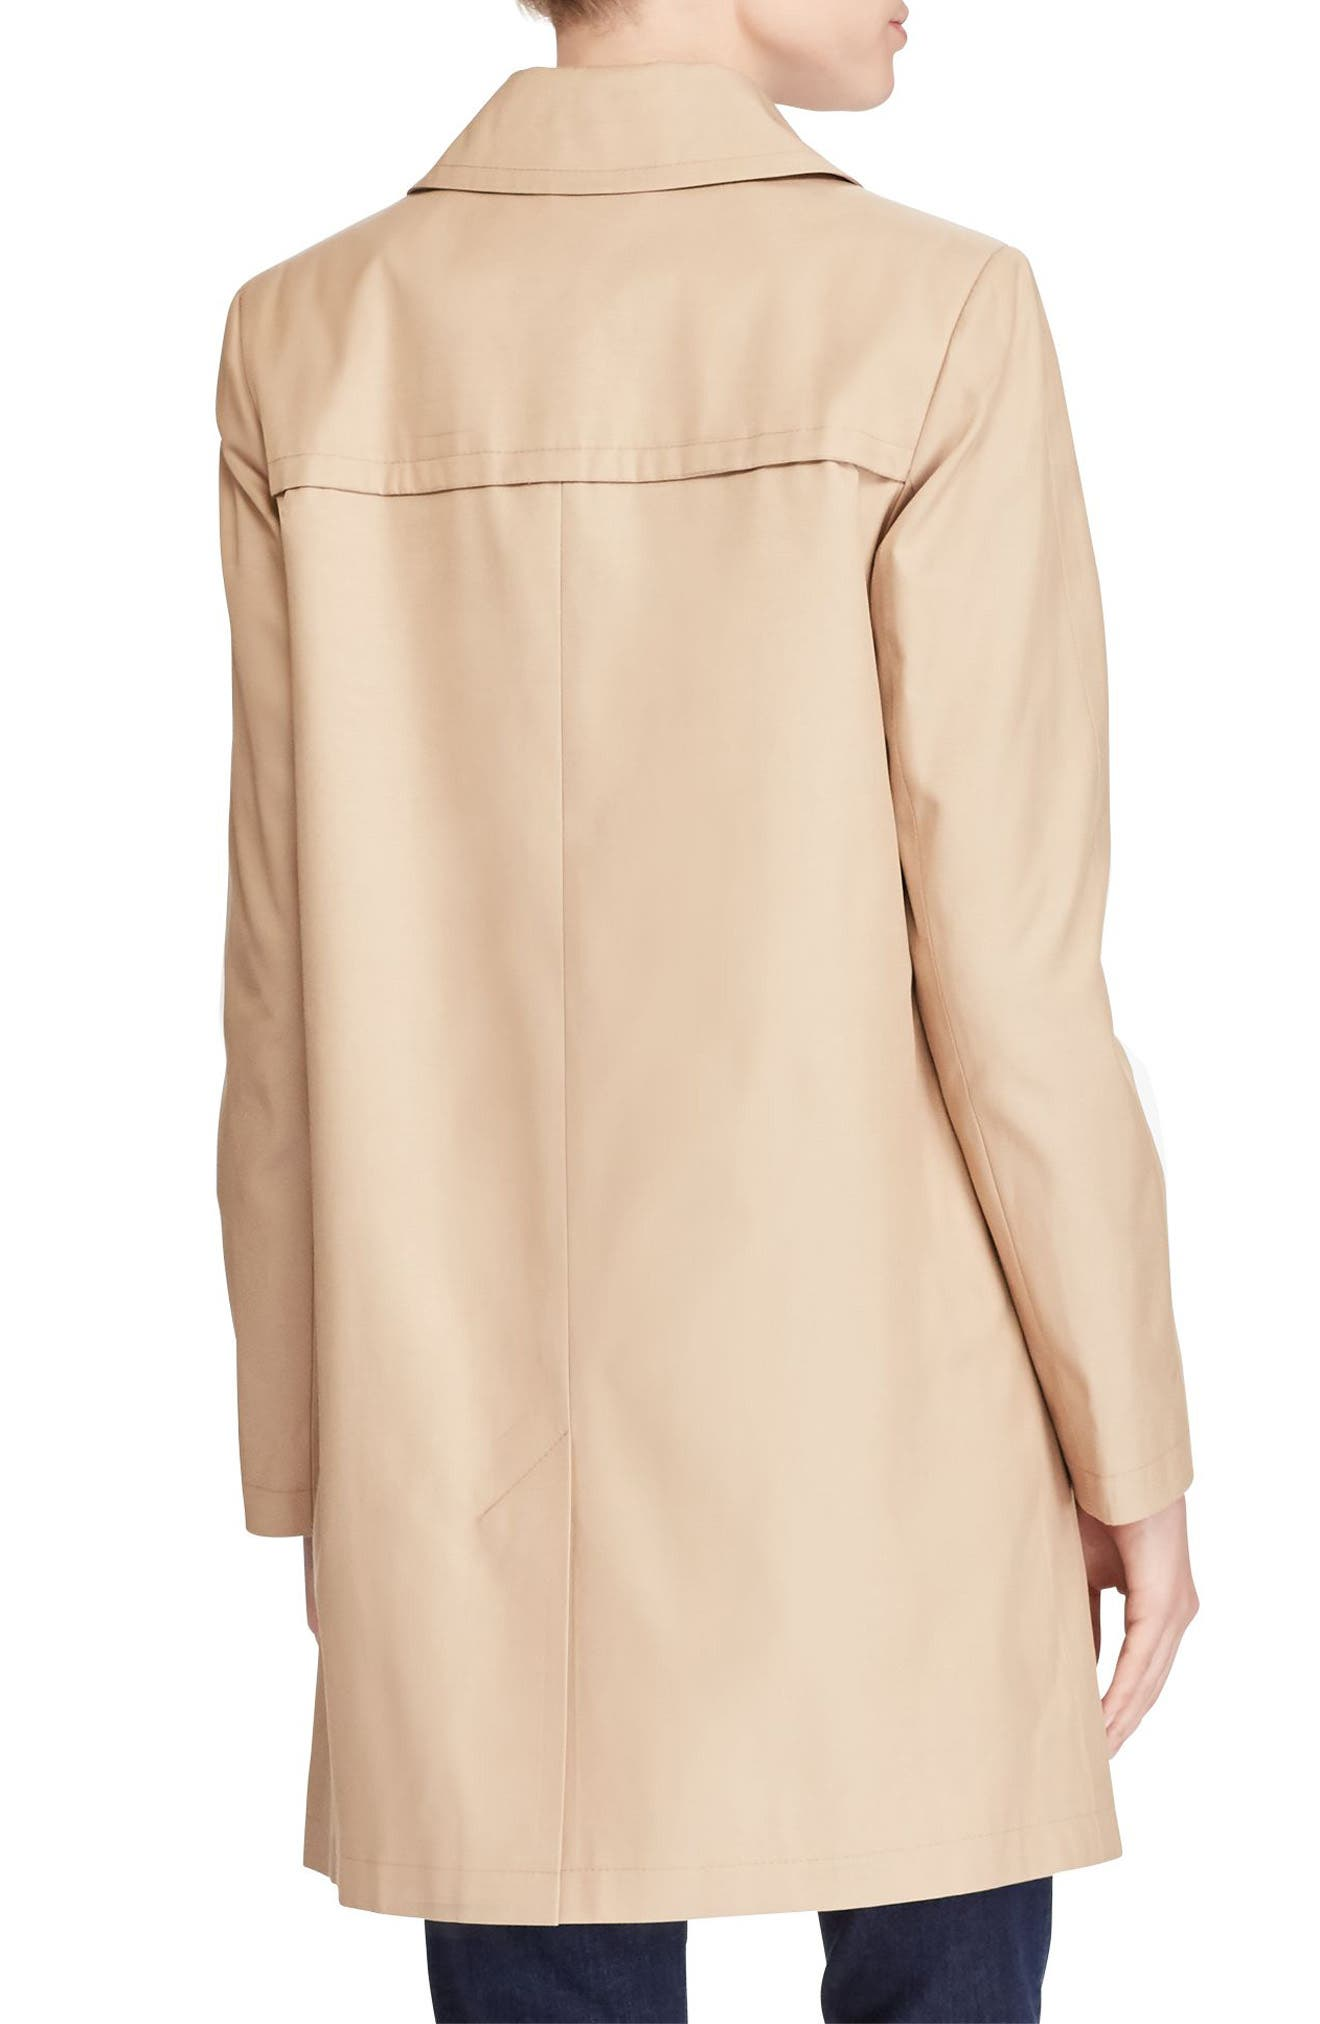 A-Line Trench Coat,                             Alternate thumbnail 5, color,